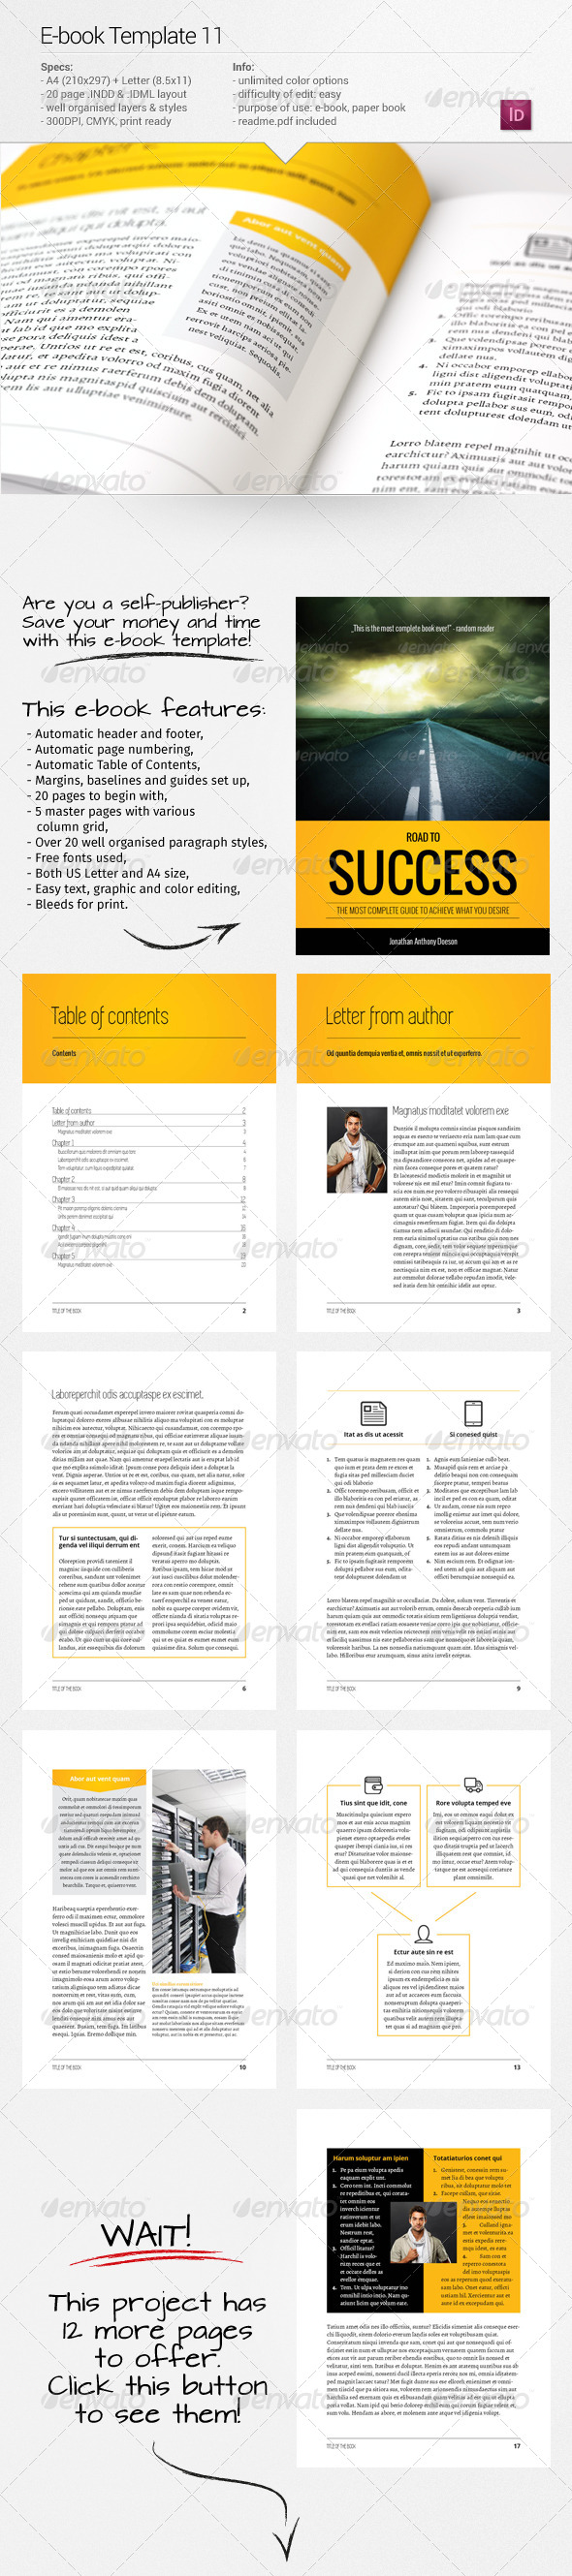 GraphicRiver E-book Template 11 7907380